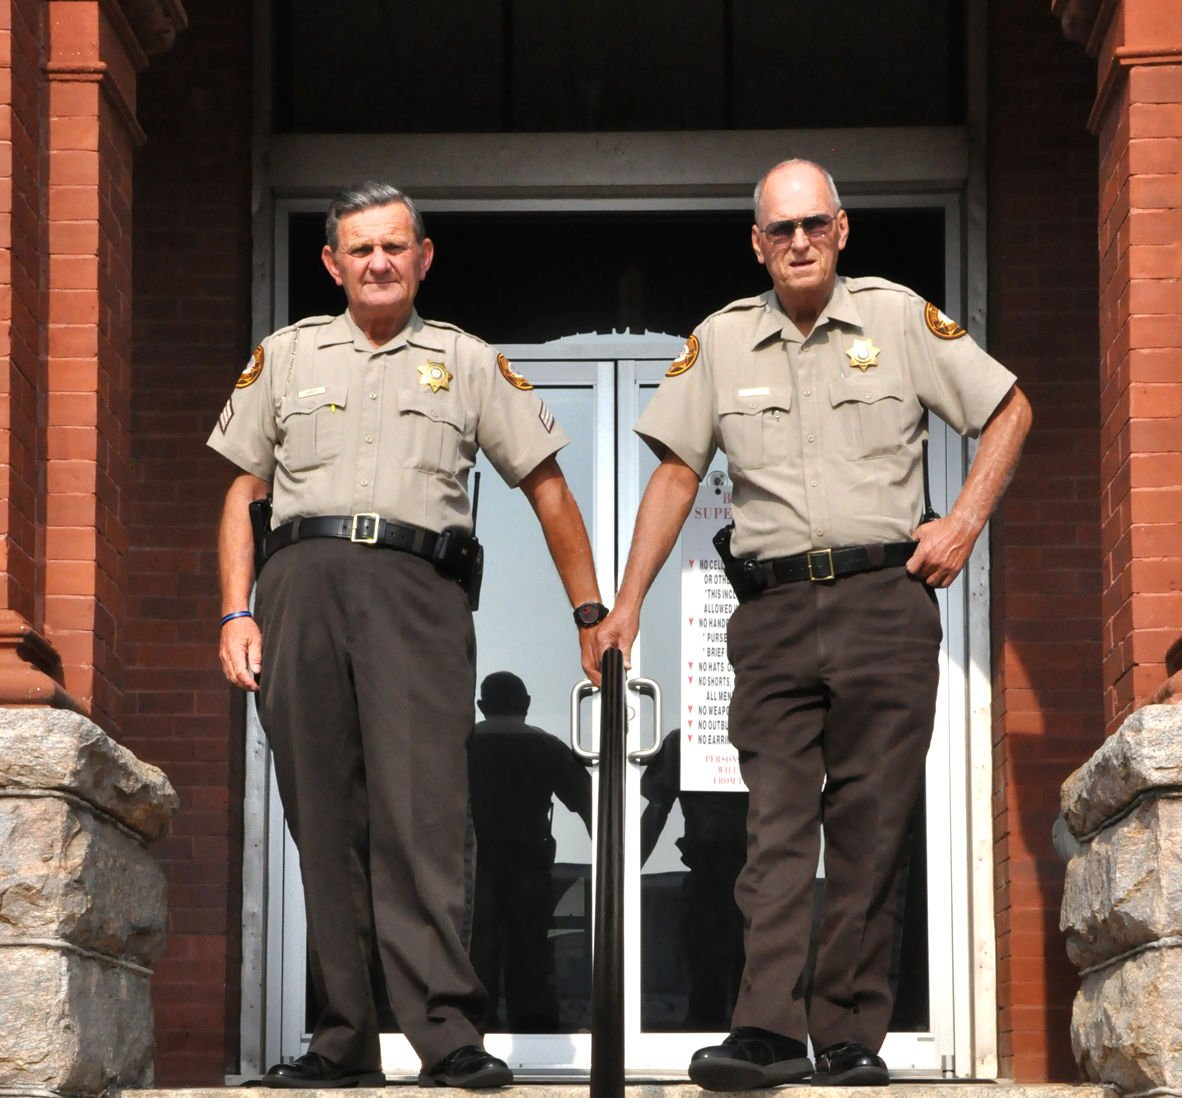 Hardy, Jordan retire from sheriff's office | News ...